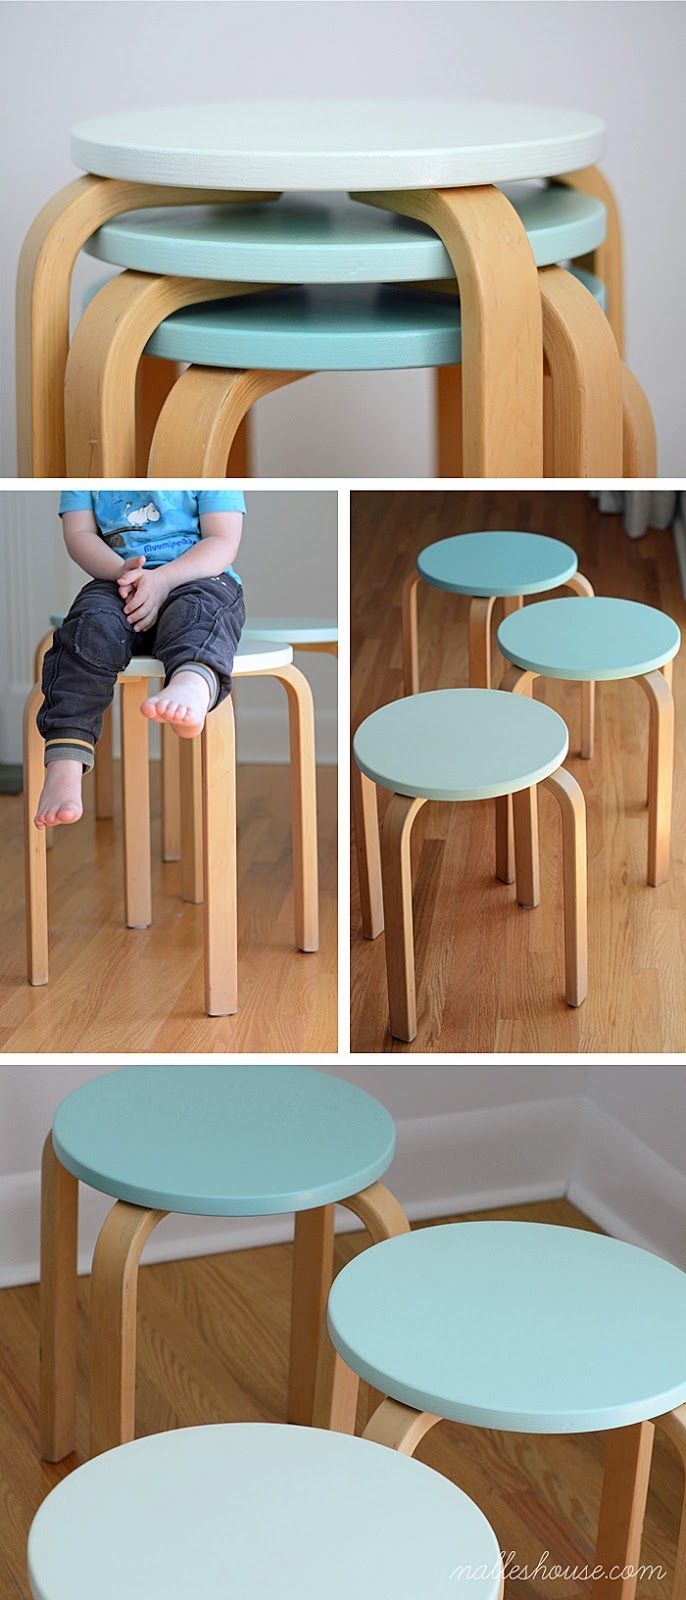 Nalle's House: STOOLS IN SHADES OF MINT